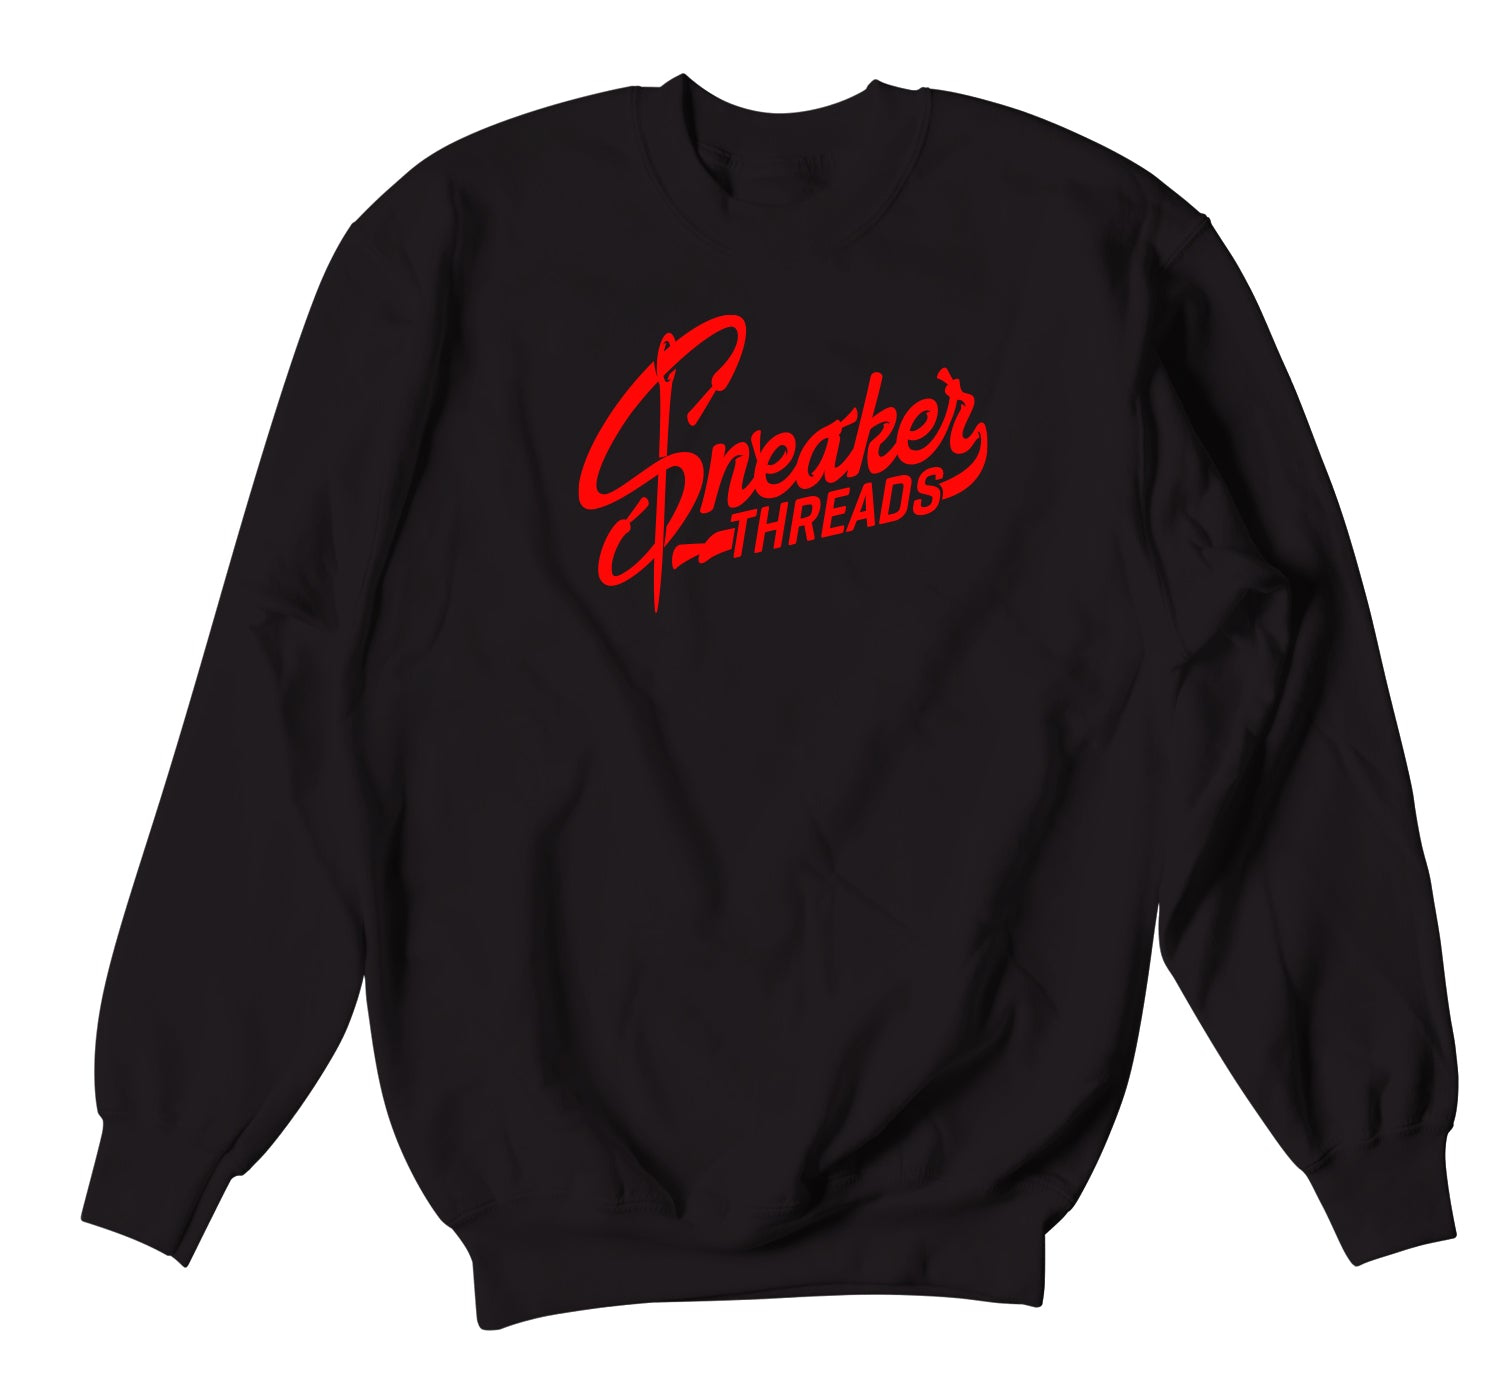 Yeezy 350 Bred ST Laces Sweater